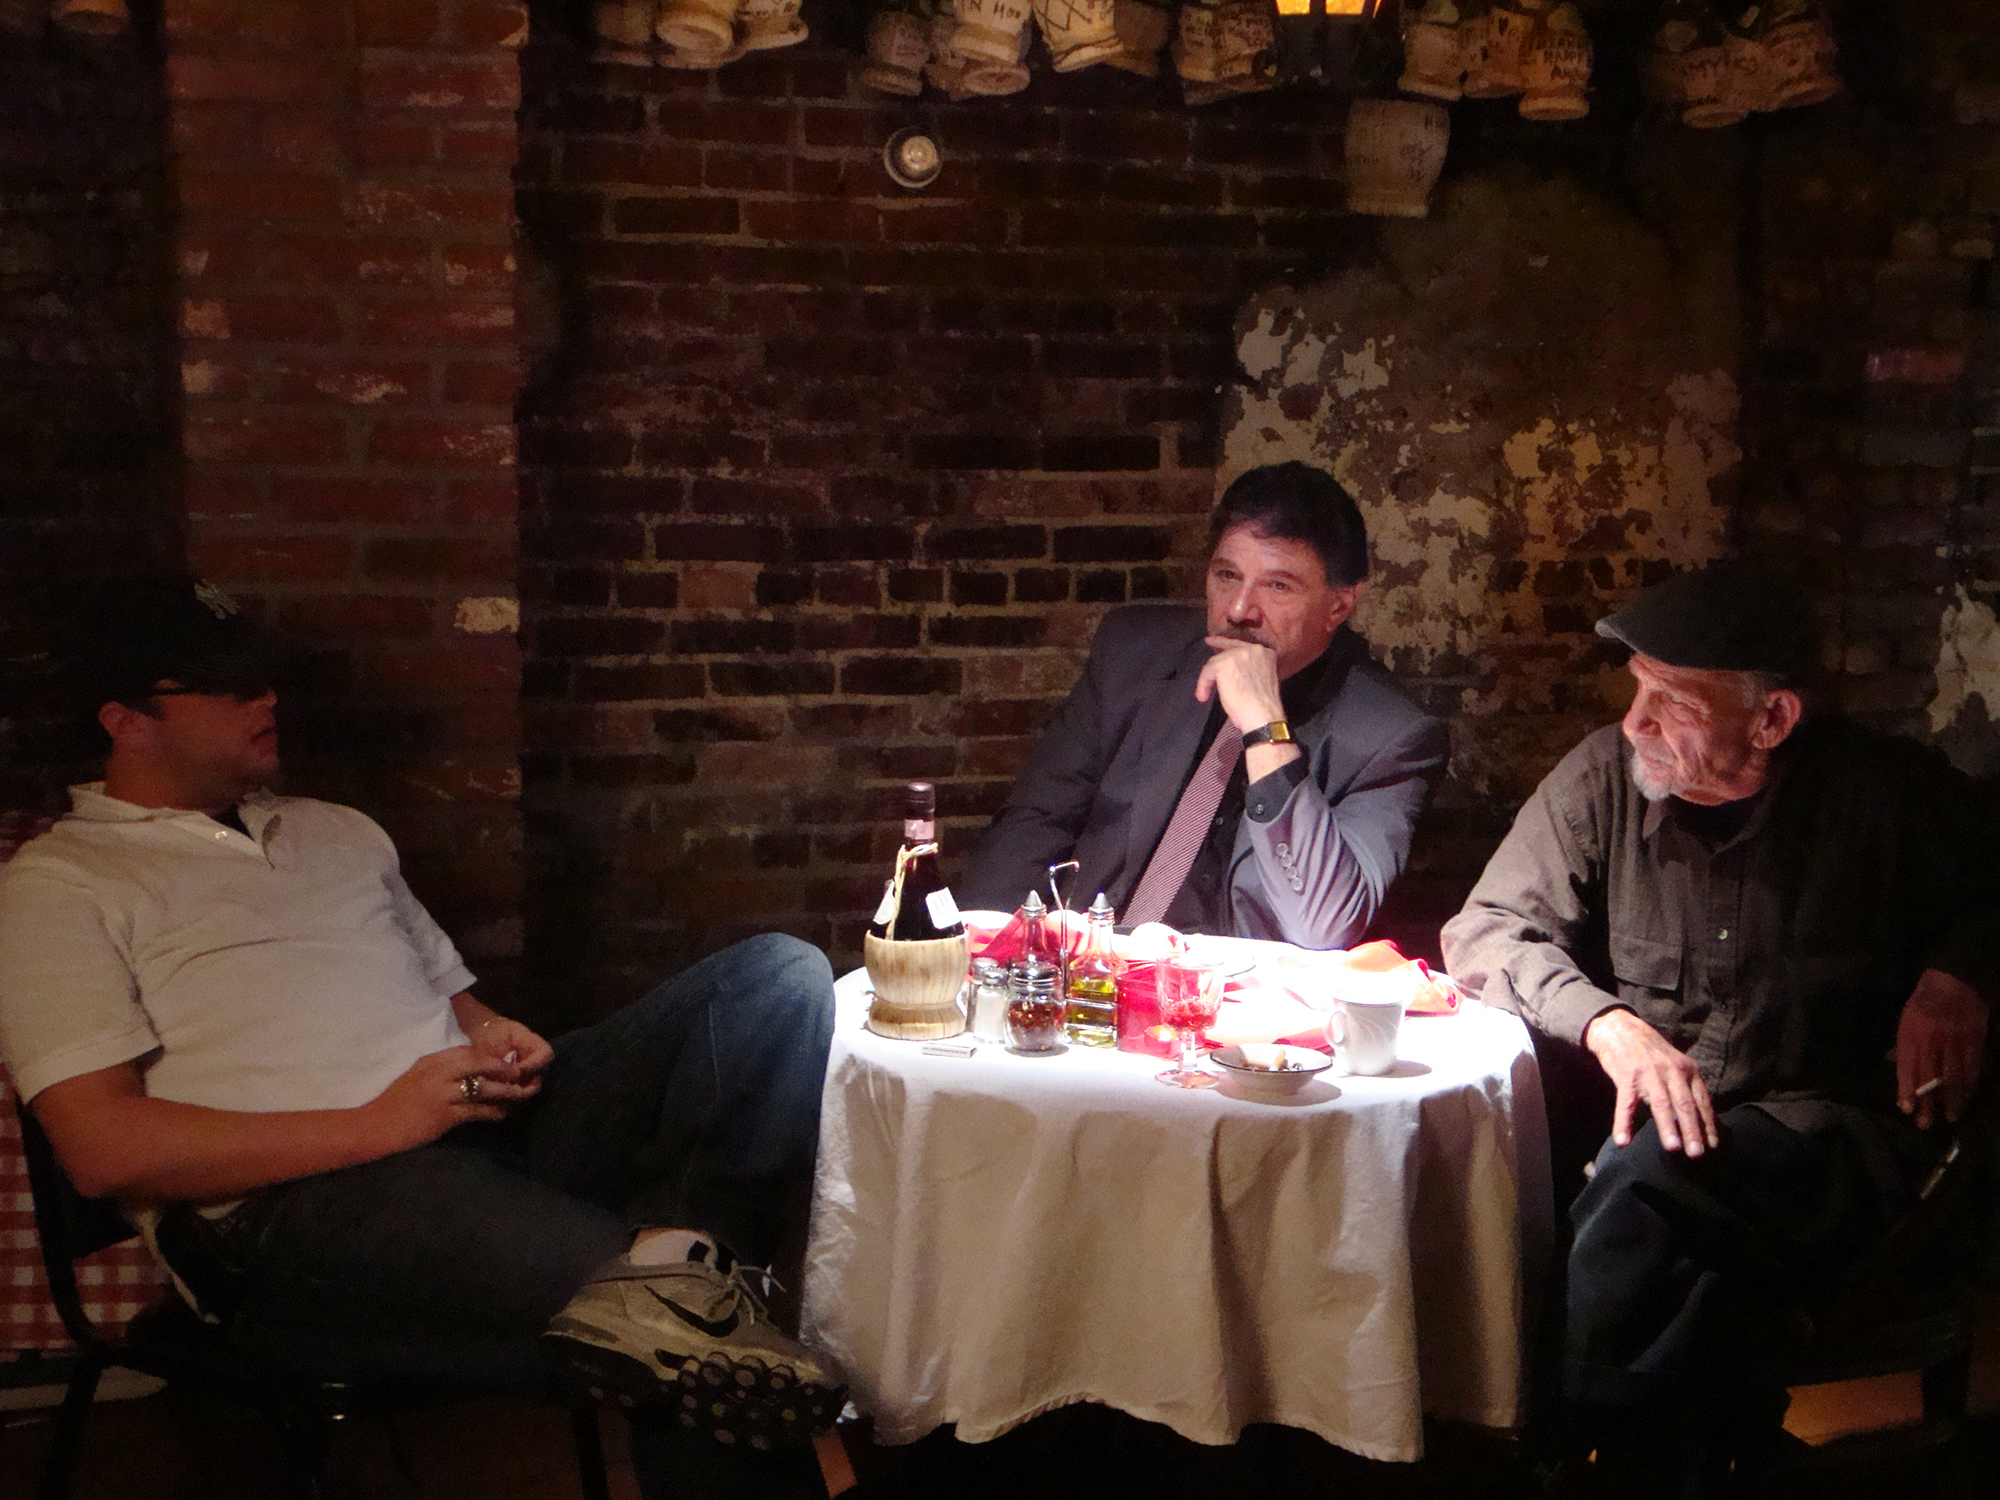 Left to Right: David Uslan, Joe Hill, and Henry Hill